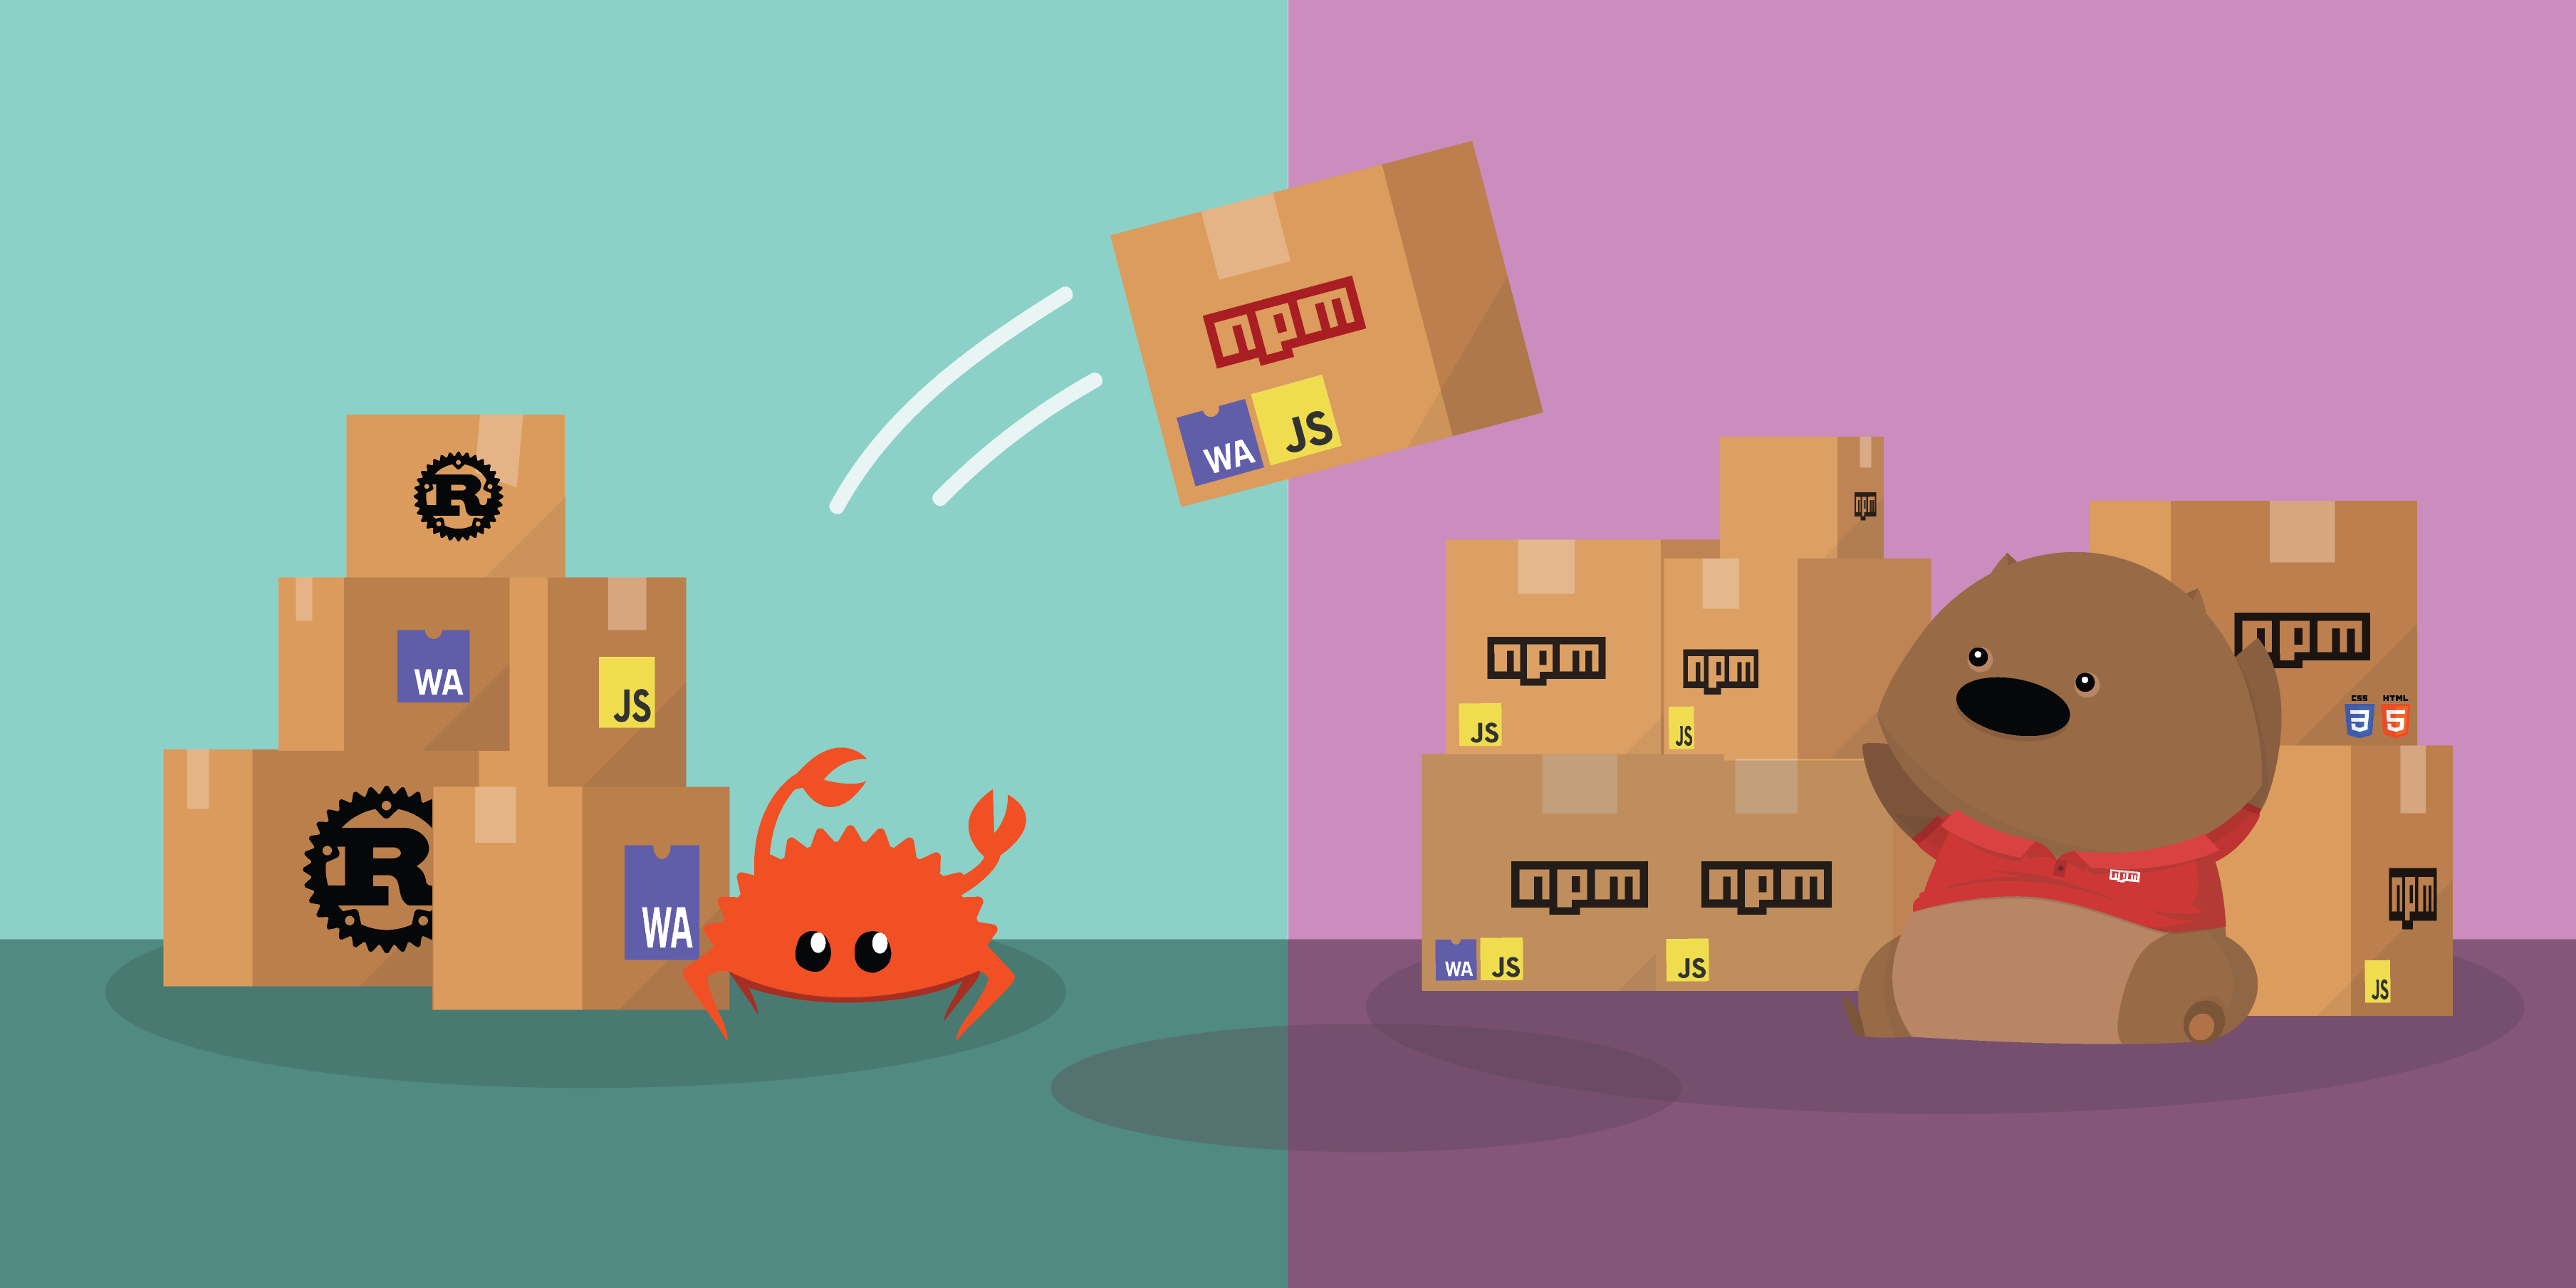 2 panels, one showing ferris the crab with assorted rust and wasm packages and one with the npm wombat with assorted js wasm and css/html packages. the crab is throwing a package over towards the wombat